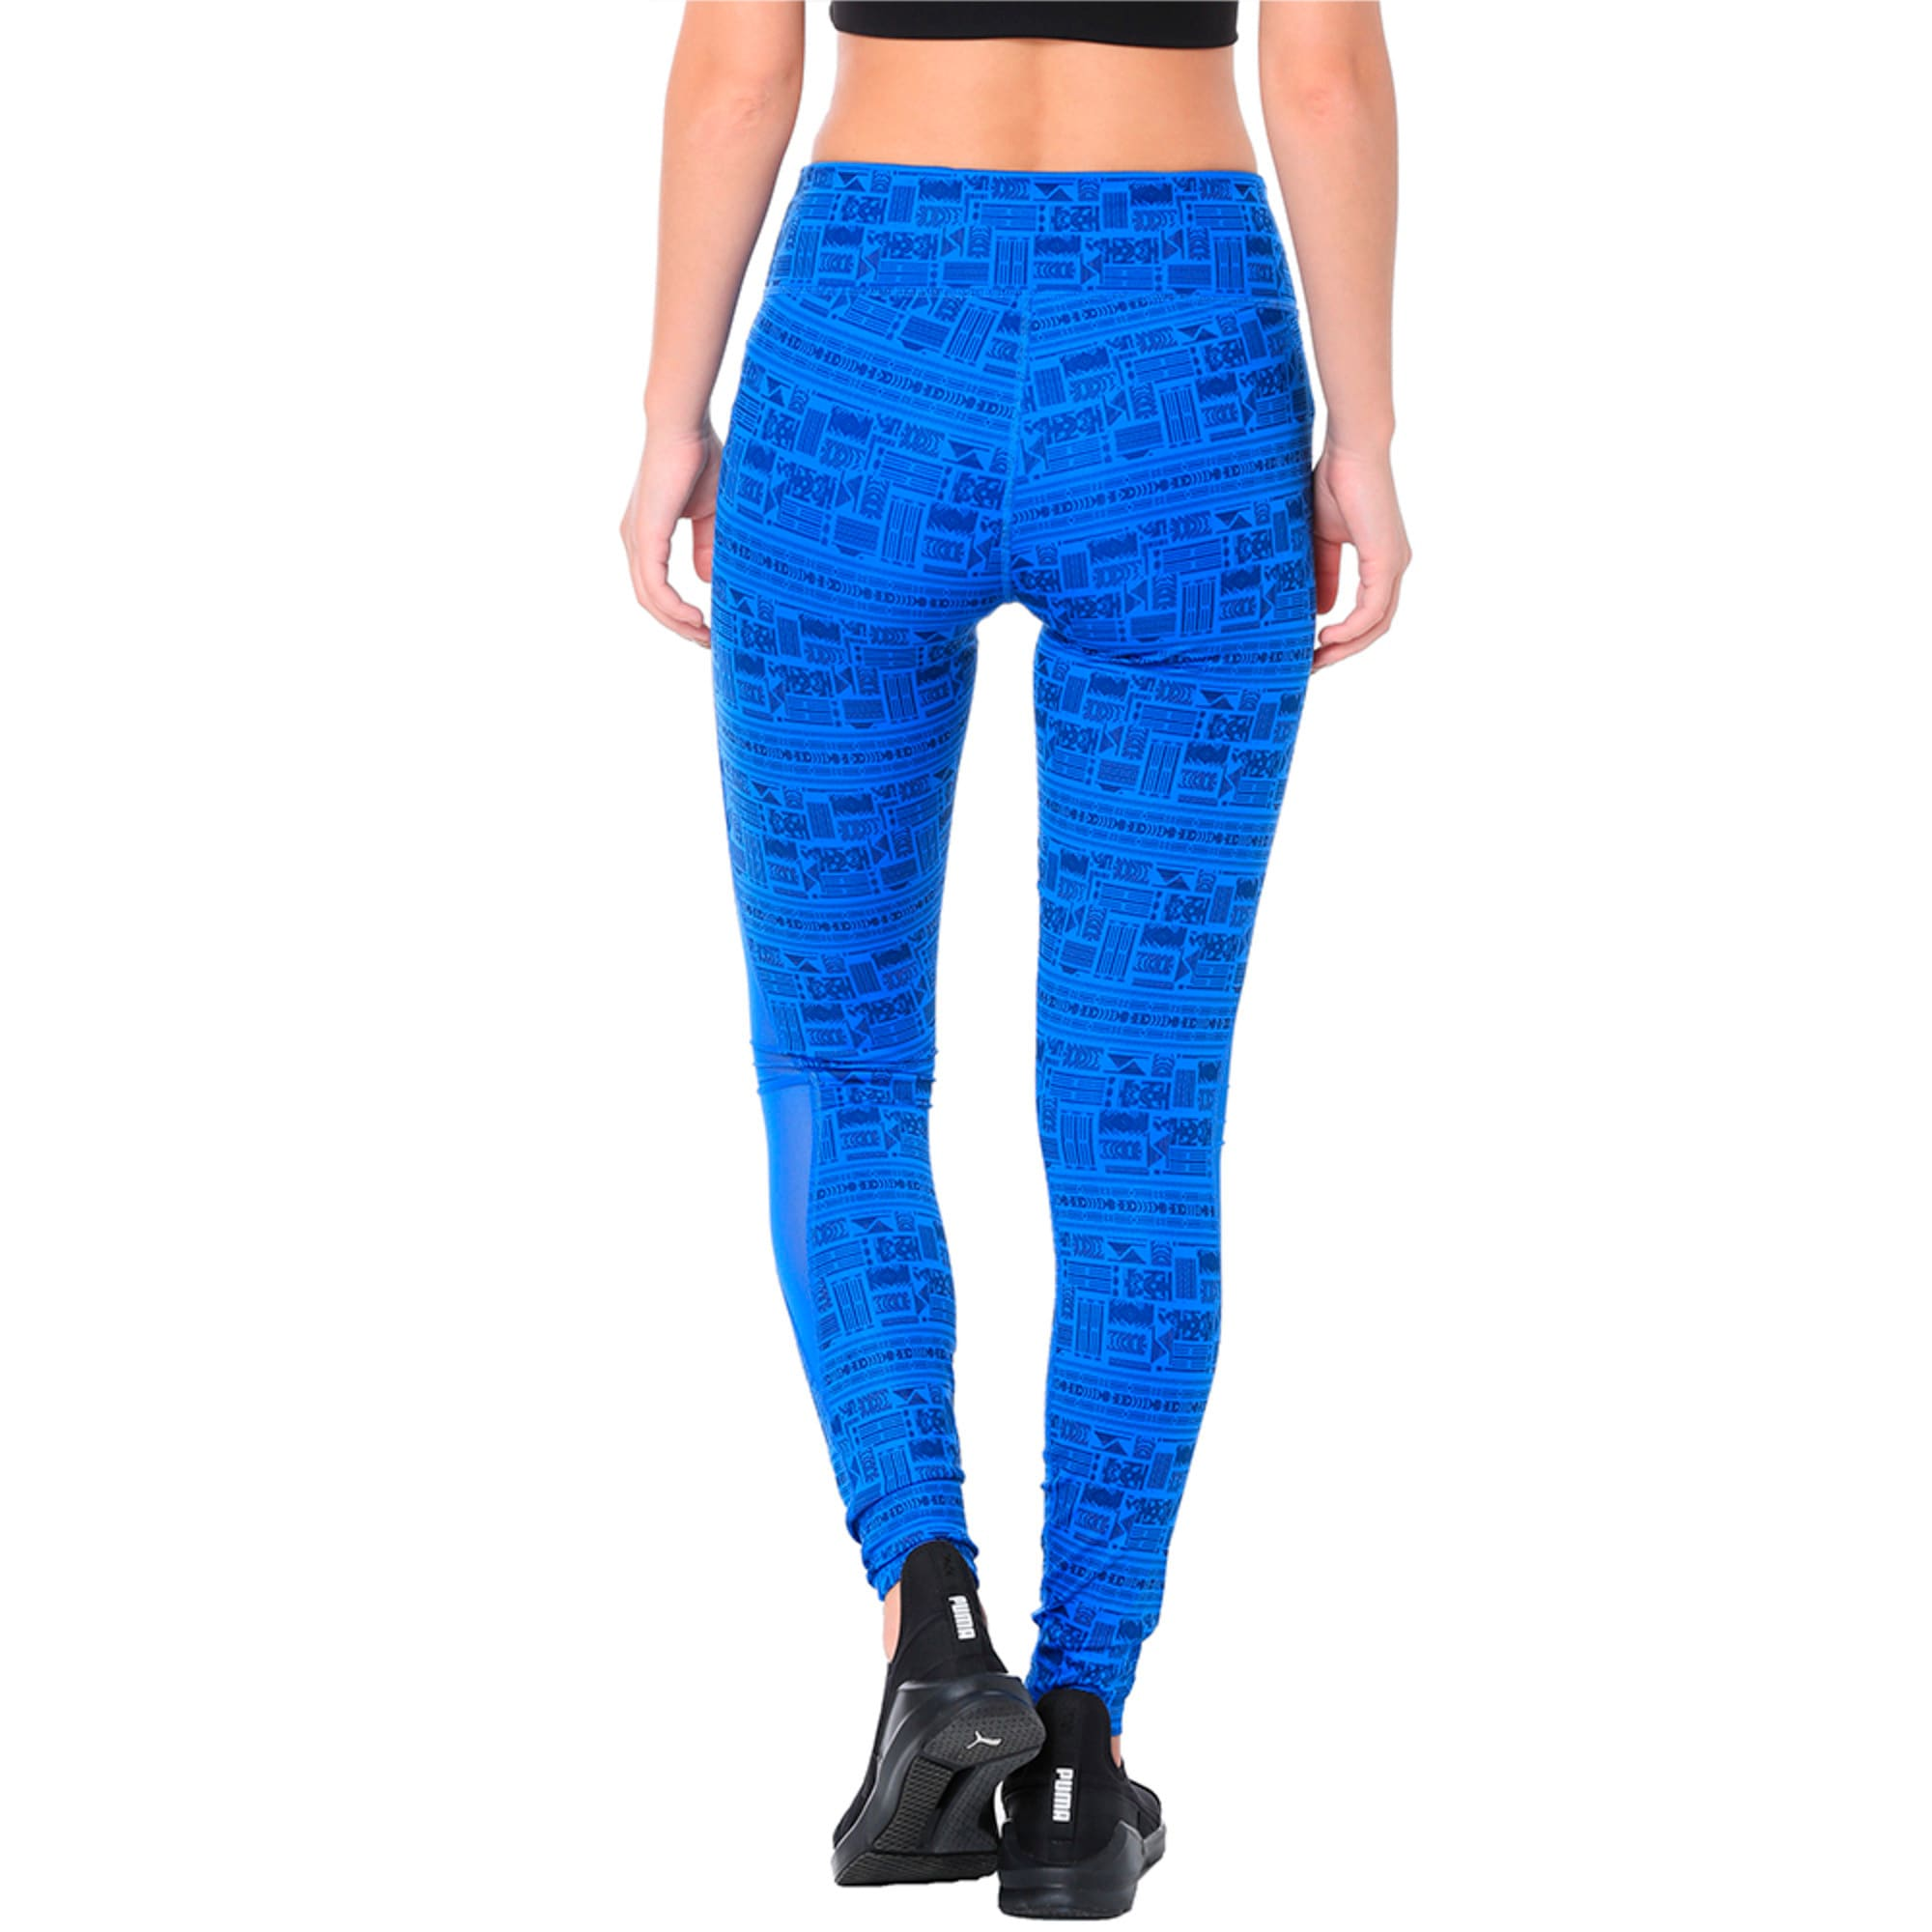 Thumbnail 1 of All Eyes On Me Mesh Women's Tights, Nebulas Blue-Soltice, medium-IND